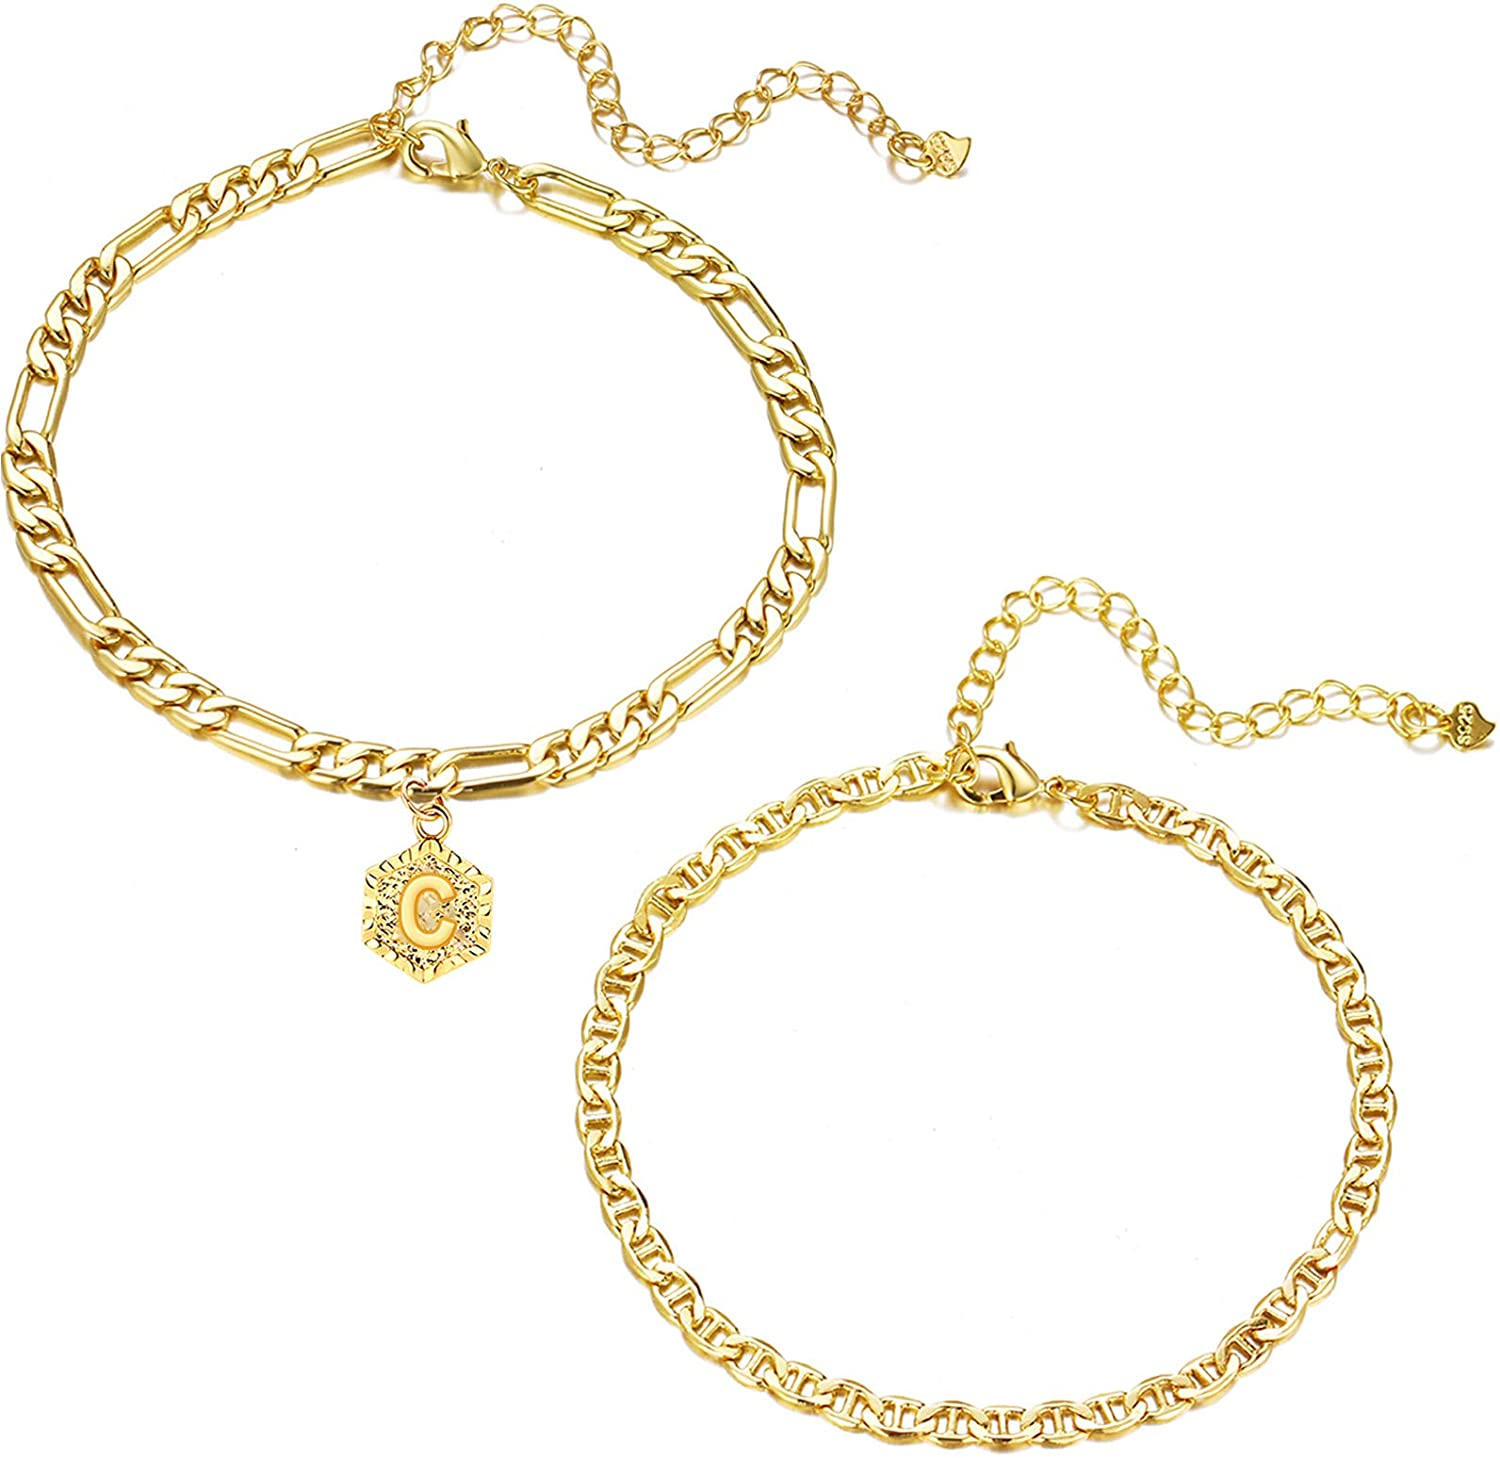 Gold Initial Anklets for Women,Flat Mariner Chain Link Anklet,Dainty Hexagon Shaped Letter Figaro Chain Initial Ankle Bracelets Summer Foot Jewelry …